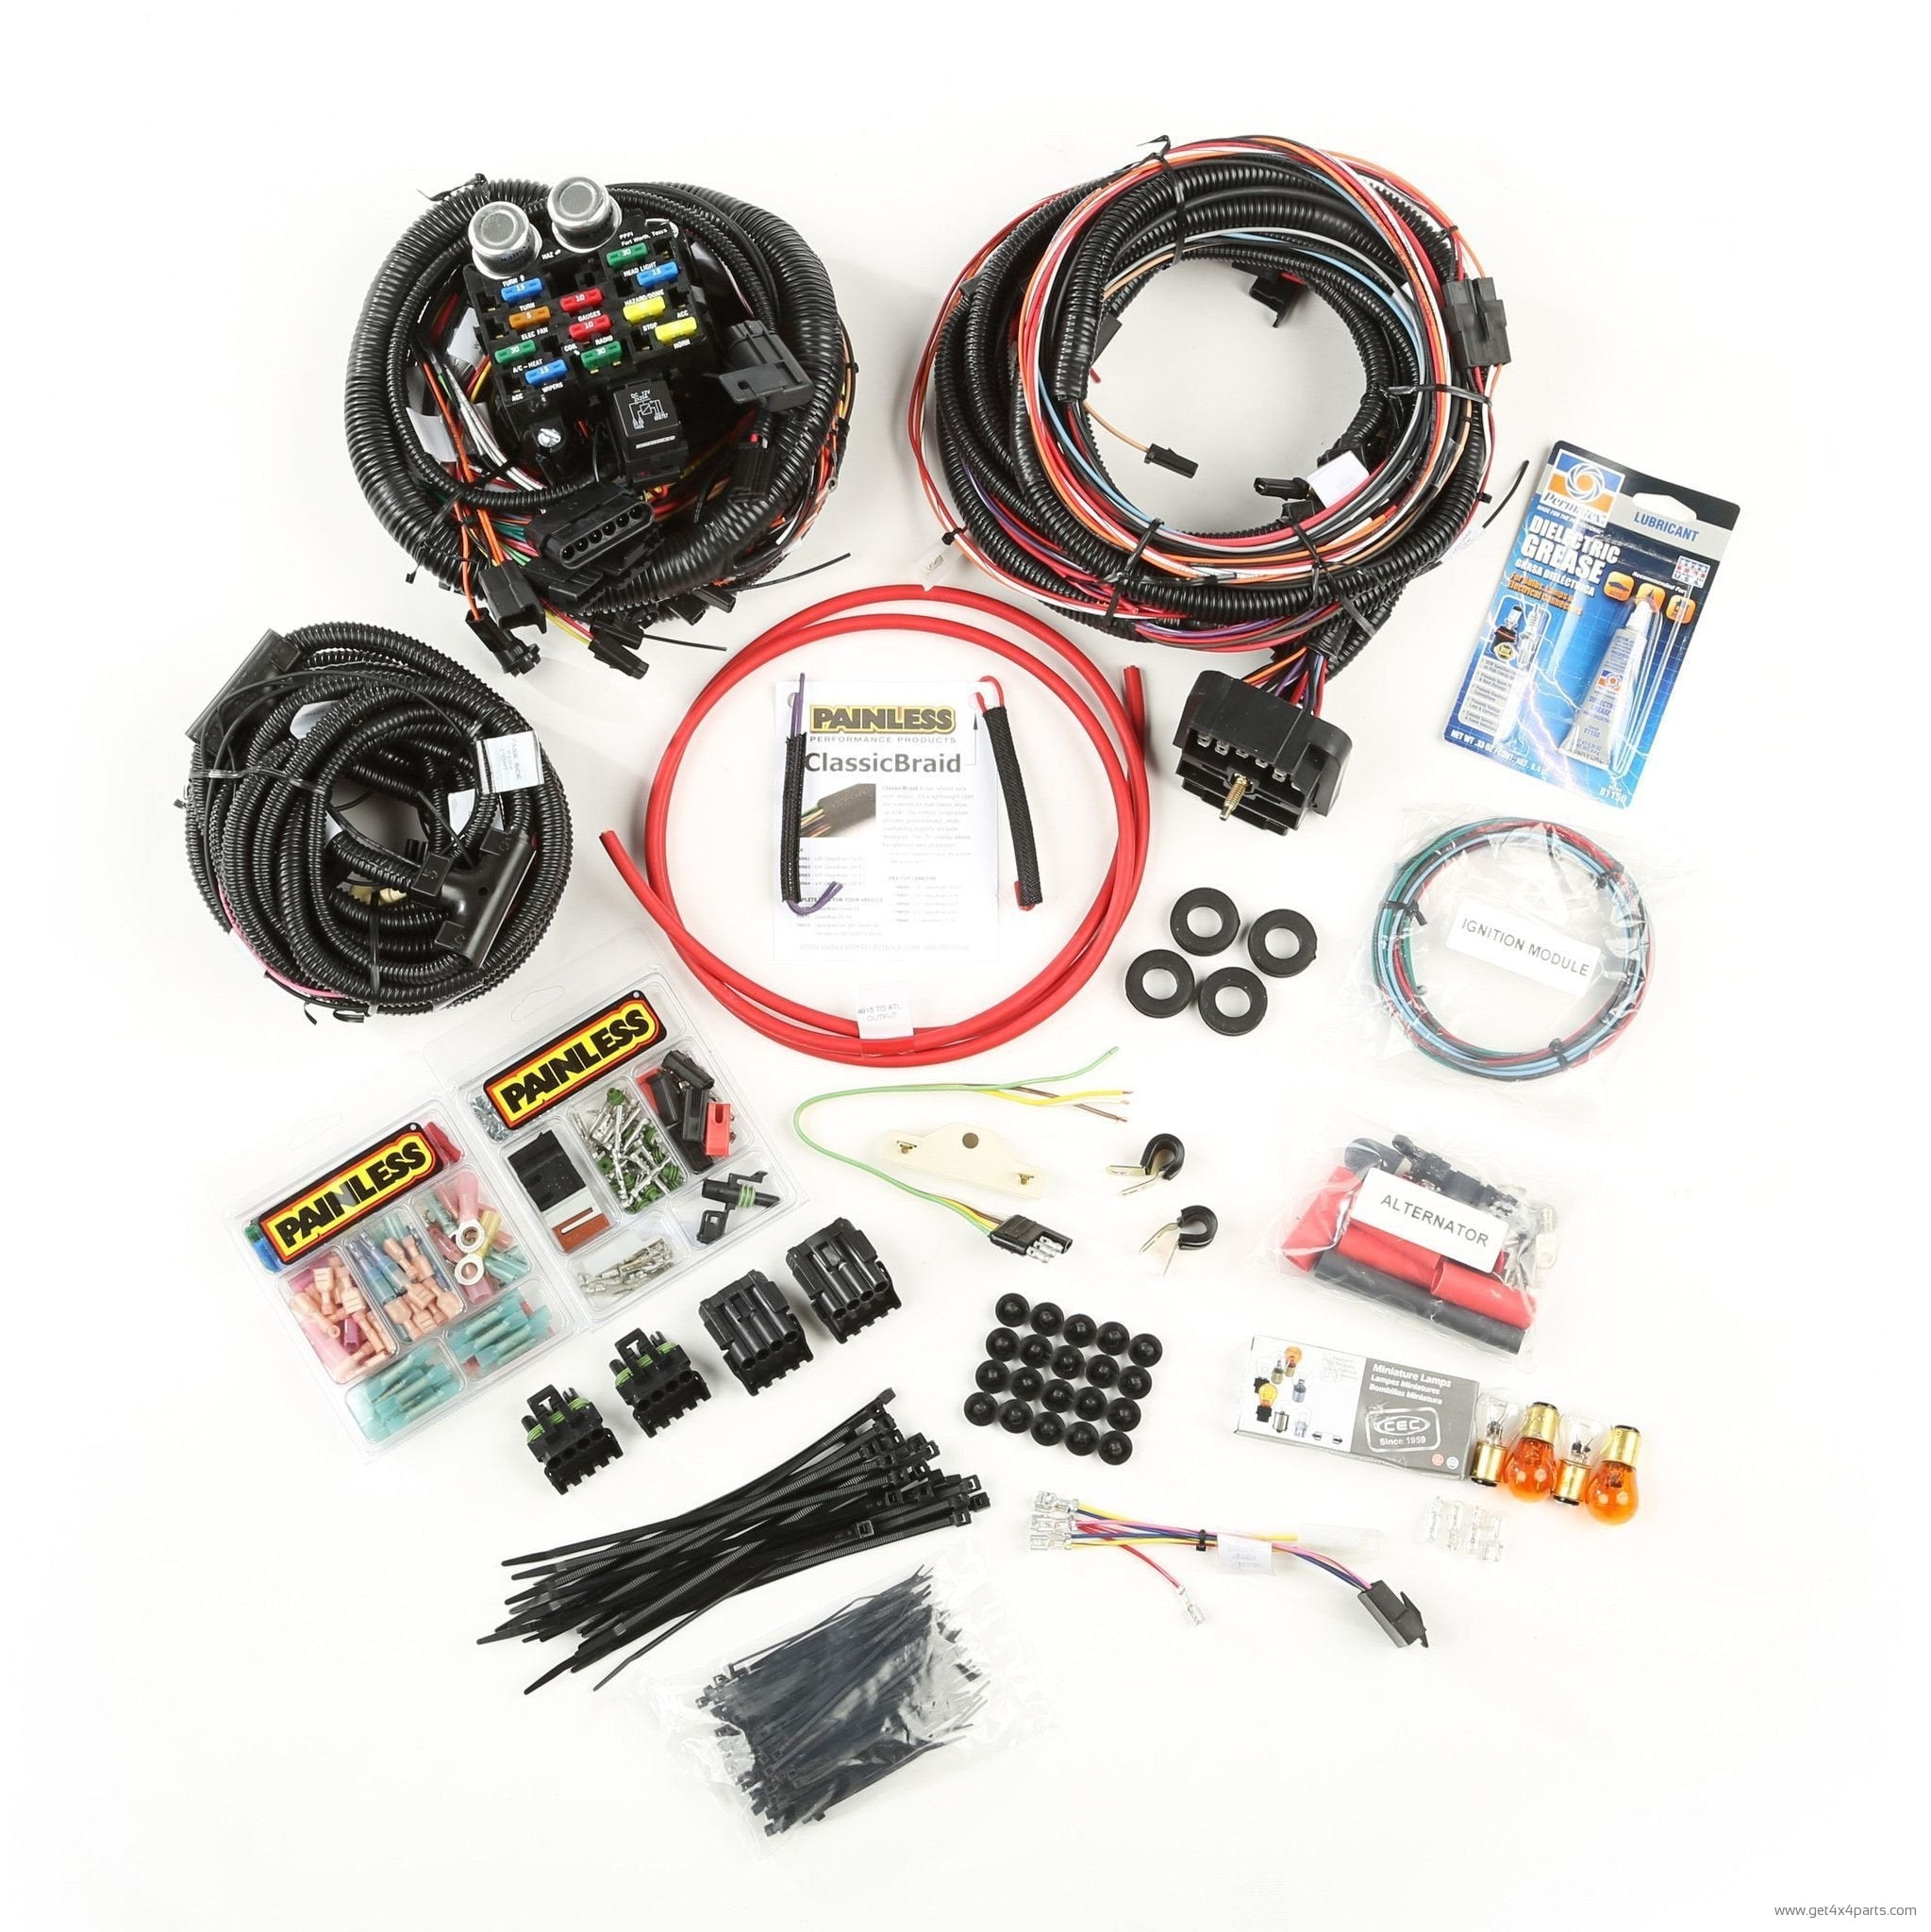 Painless Wiring Harness Jeep 4 0 Kit 10113 Fuse Box Shop For Electrical At Get4x4parts Com 00 04 Wj 01 06 Diagram